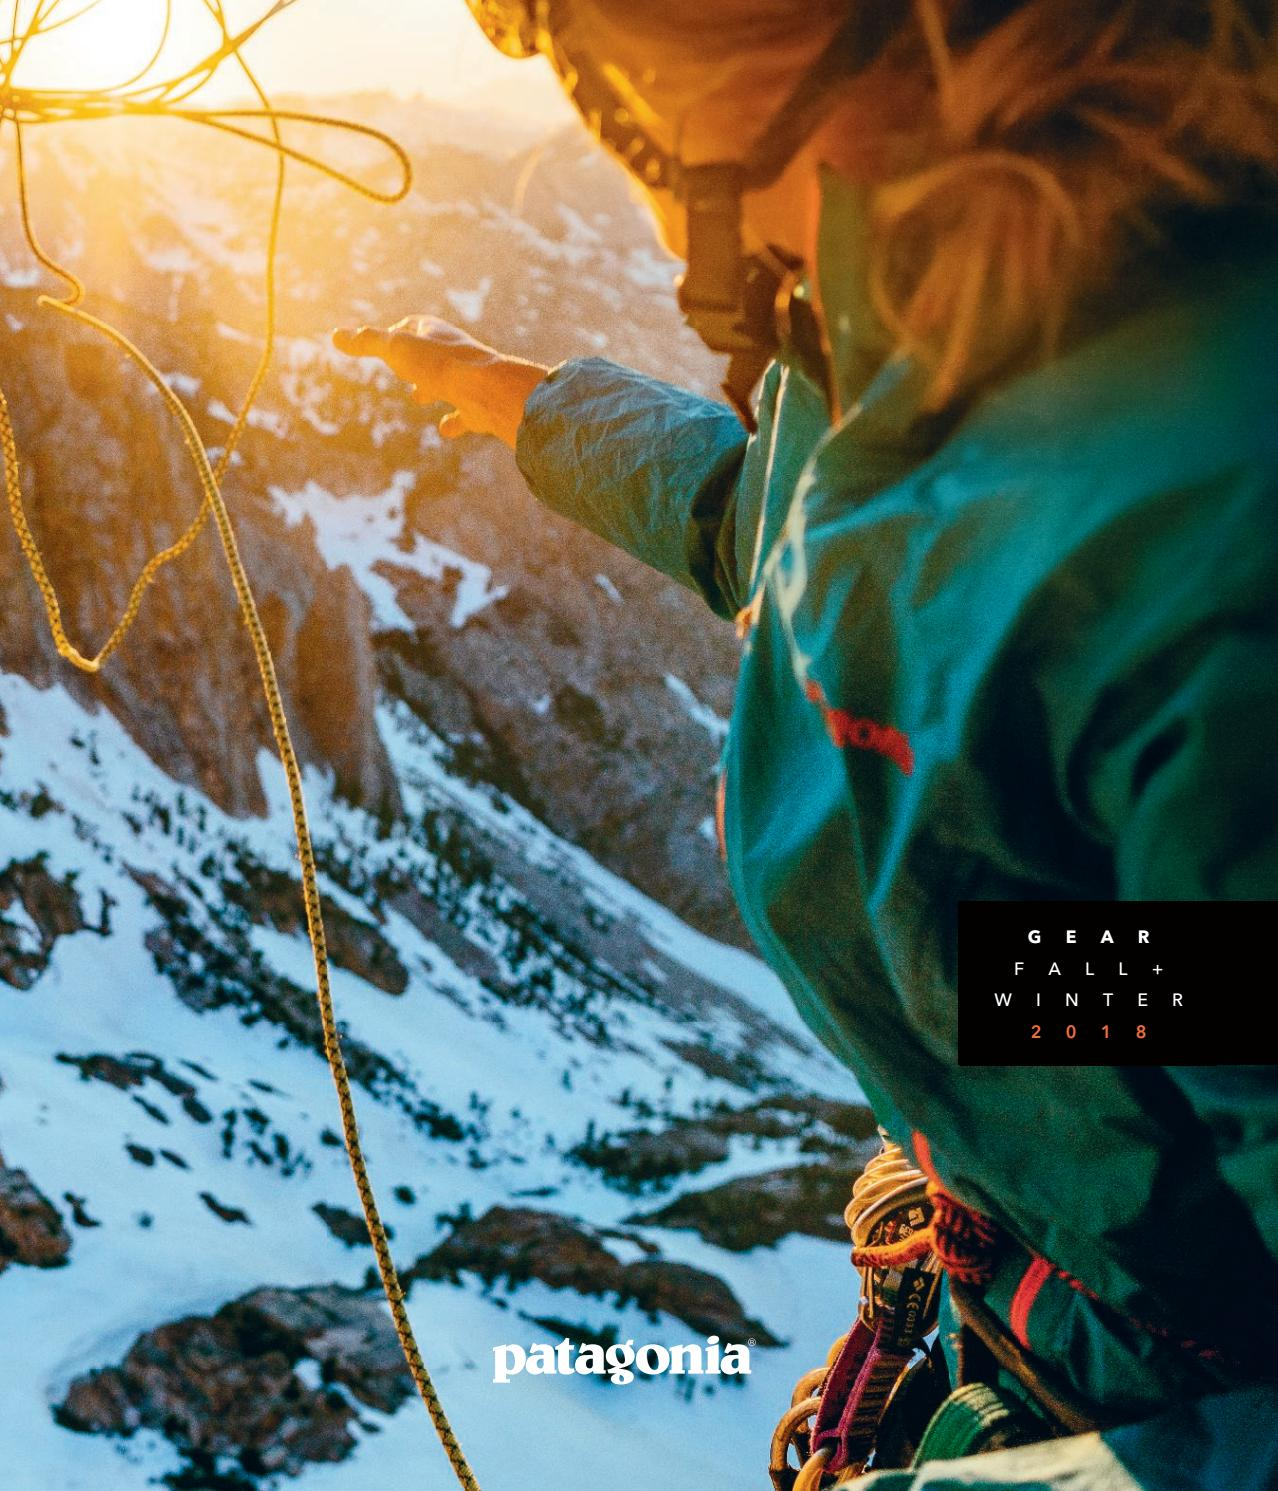 Patagonia Fall Winter Gear Guide 2018 By The Cleanest Hat Wh 97 Line Issuu